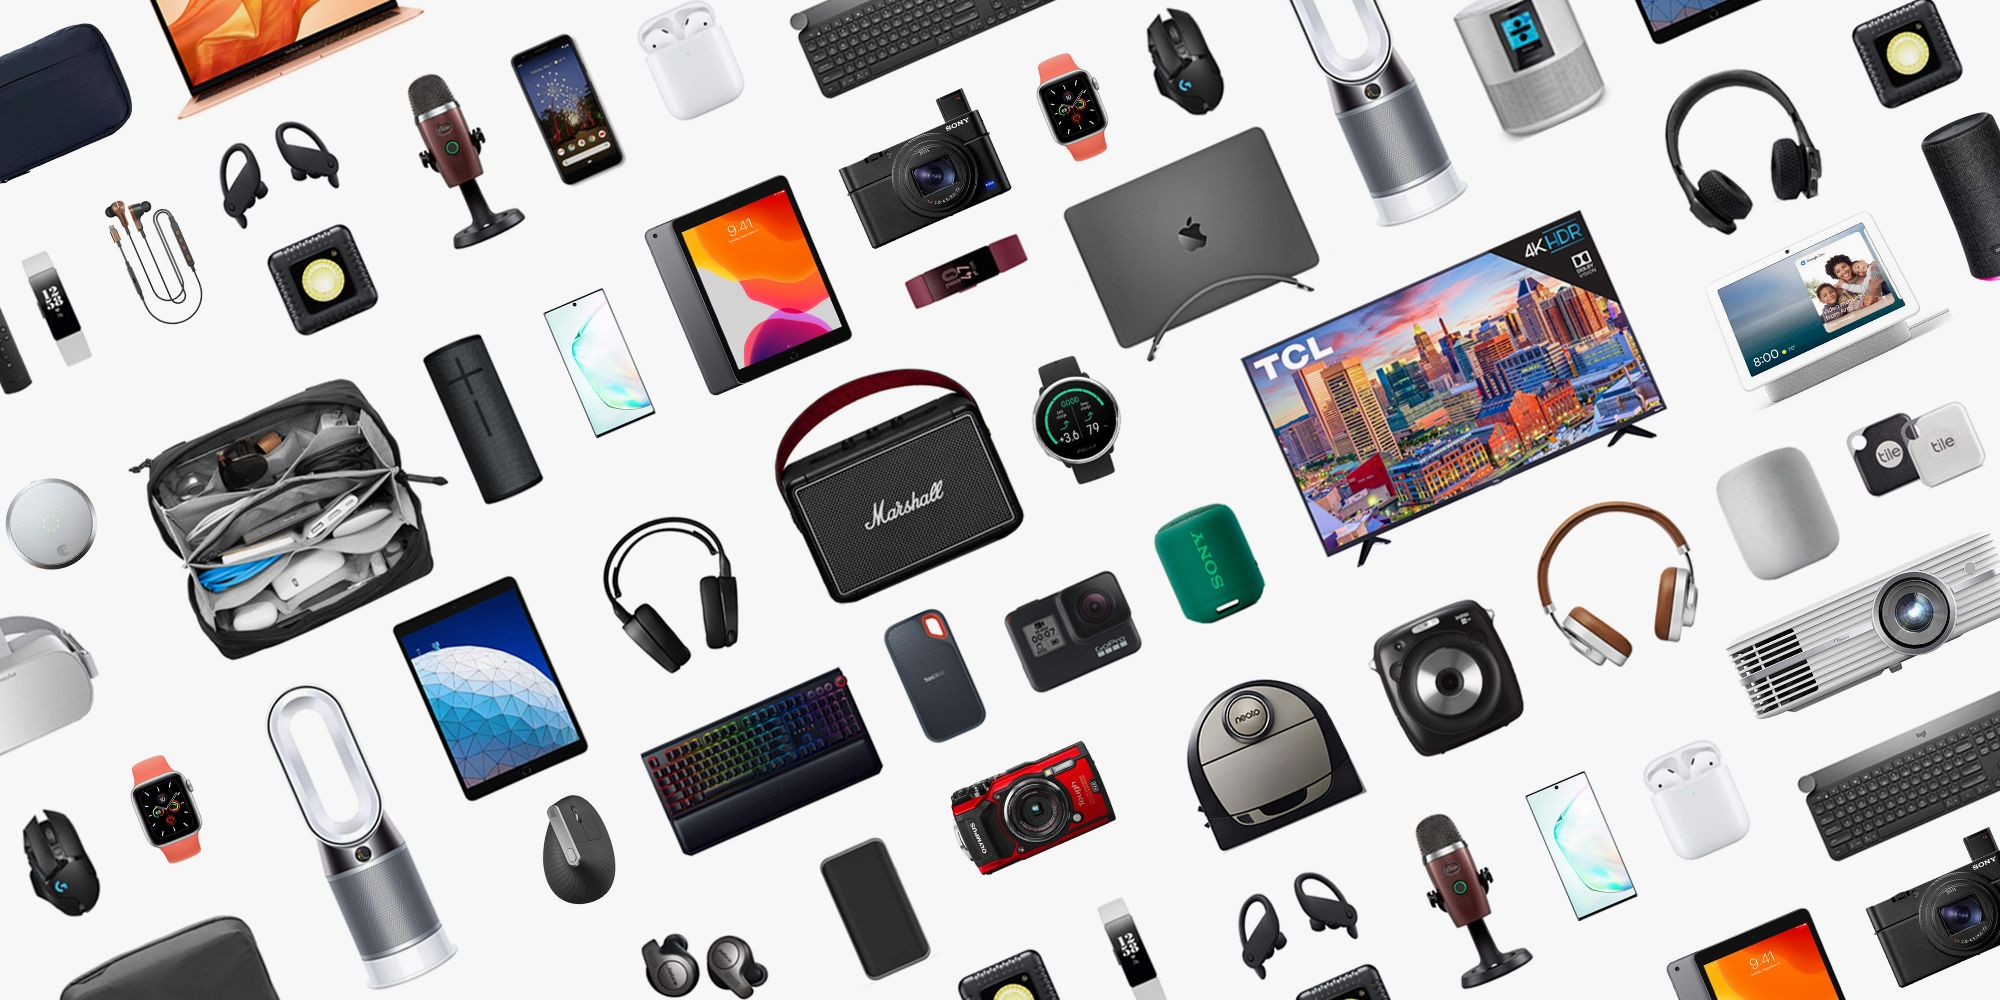 TOP 10 MUST HAVE NEW TECHNOLOGY GADGETS IN 2018-2019 the top tech you can buy right now